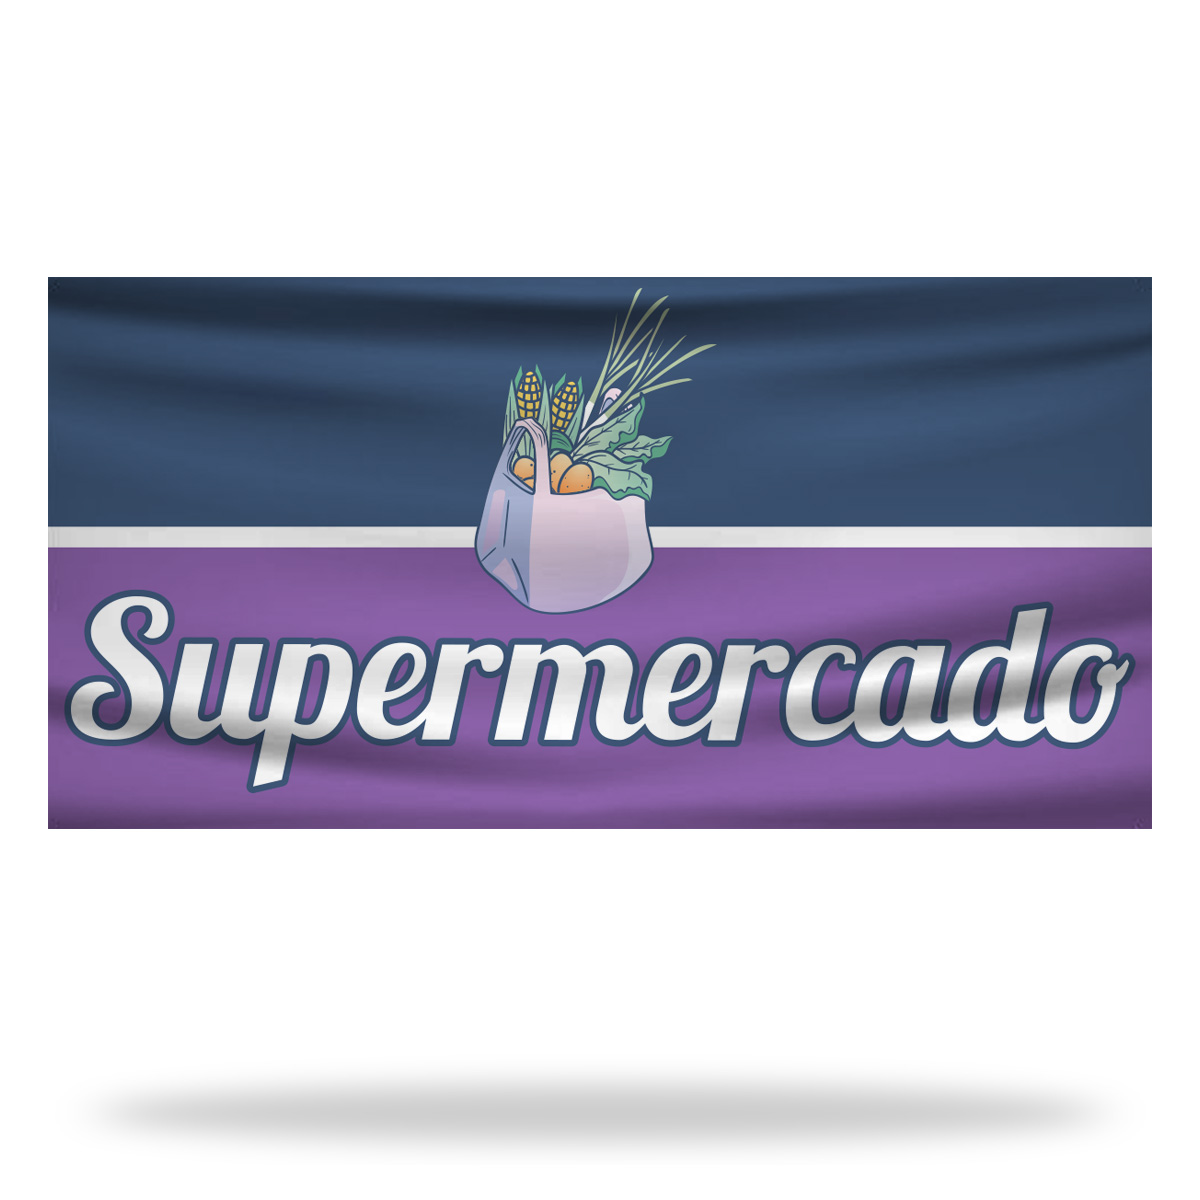 Spanish Supermarket Flags & Banners Design 03